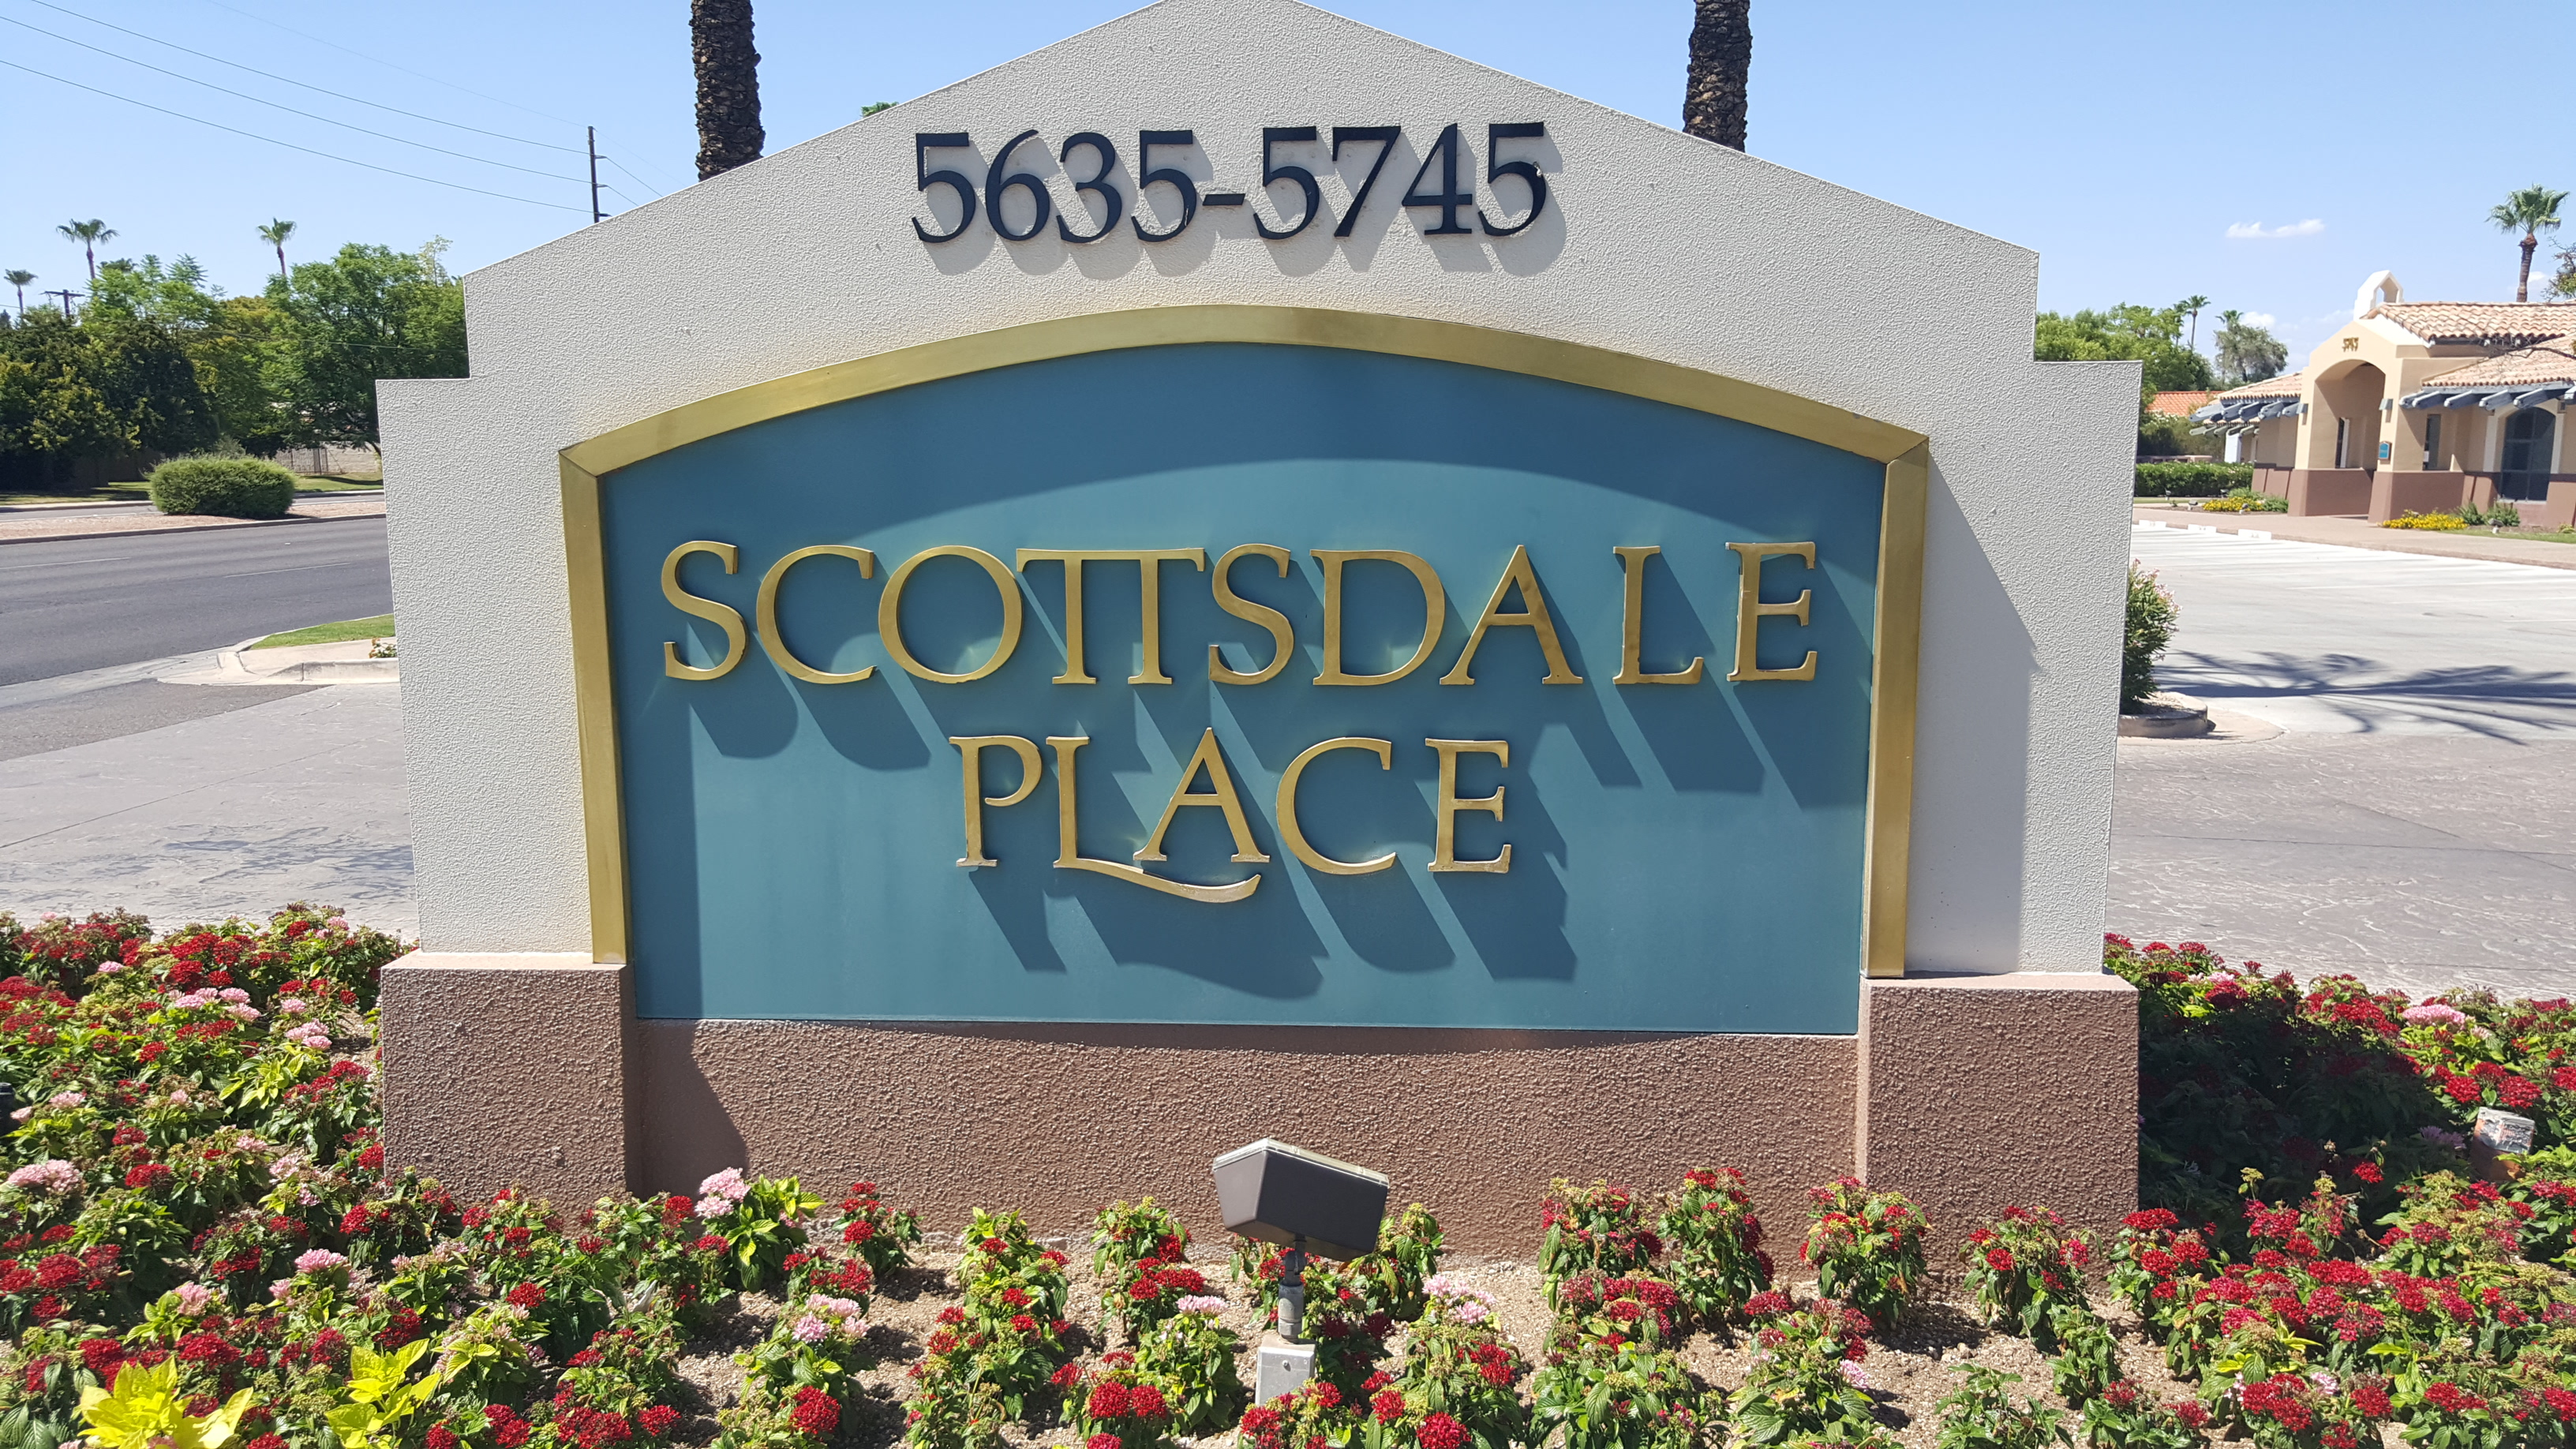 Find our Arizona DUI Law Firm office located in the Scottsdale Place.